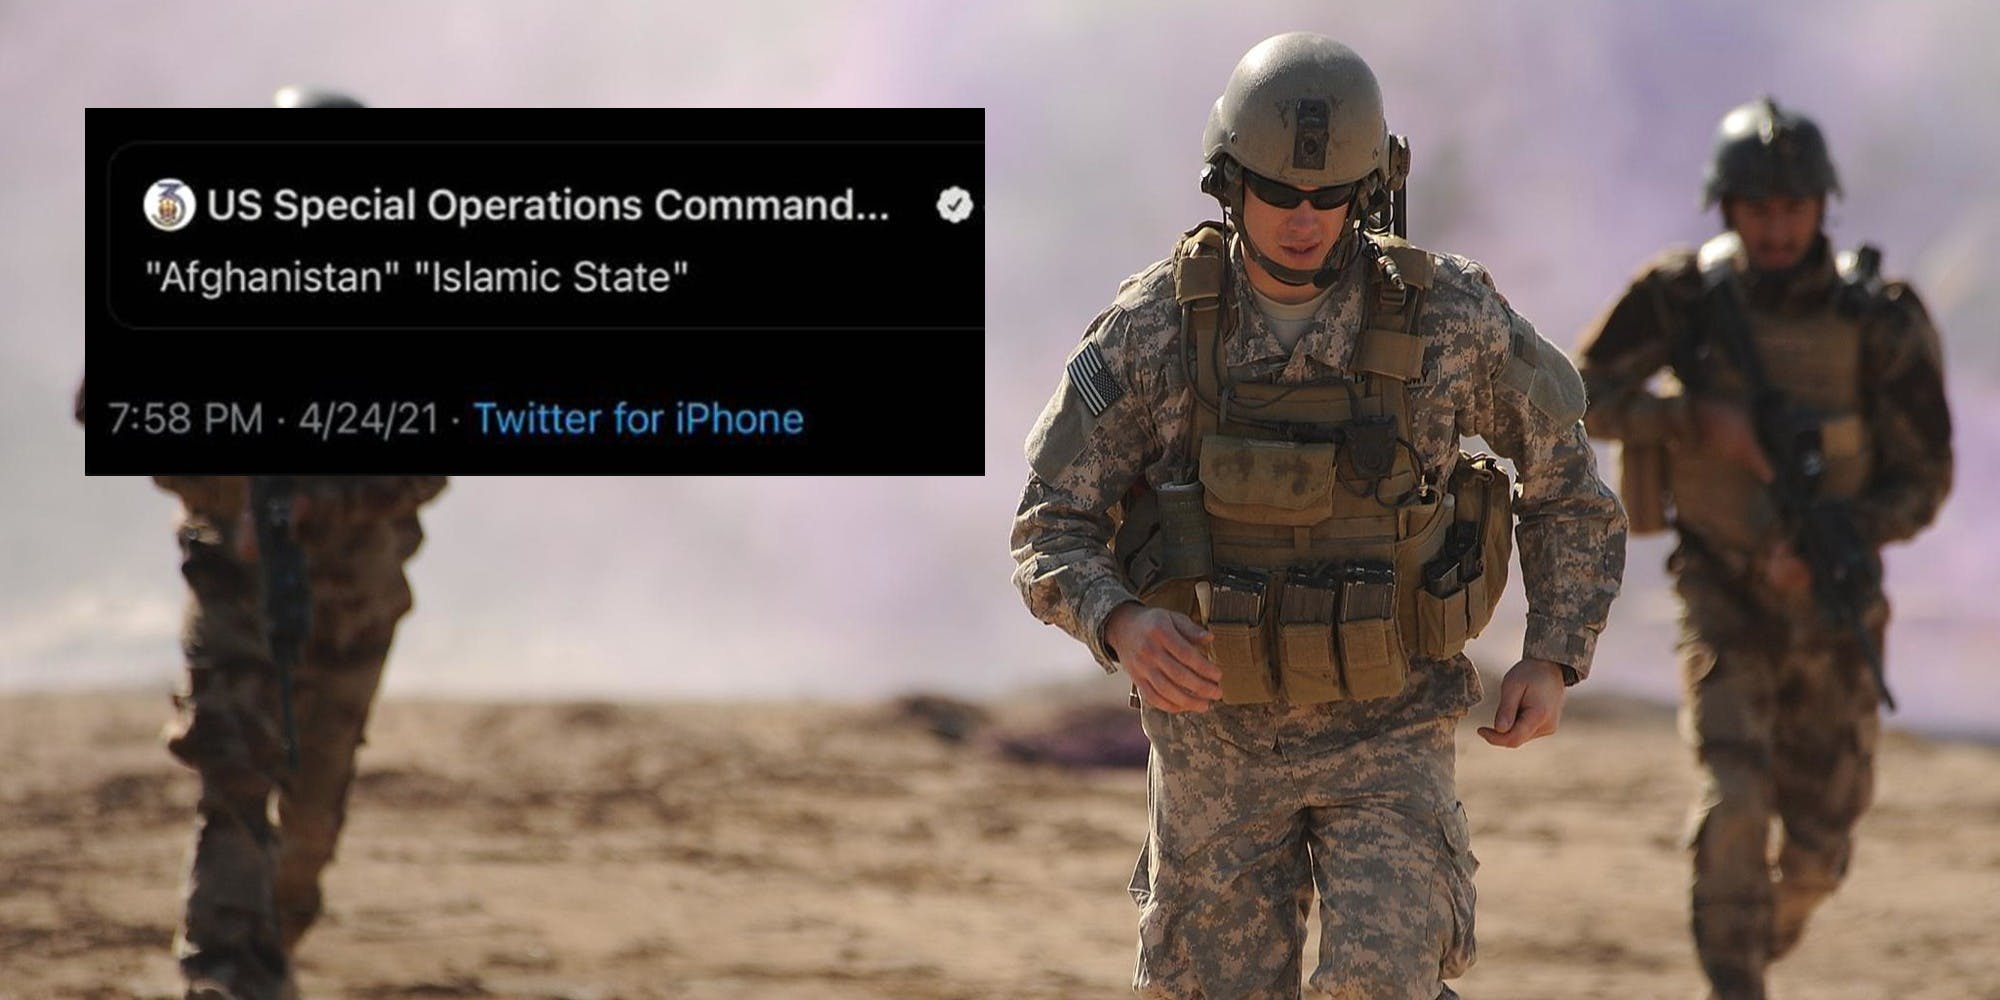 A tweet next to a special forces soldier